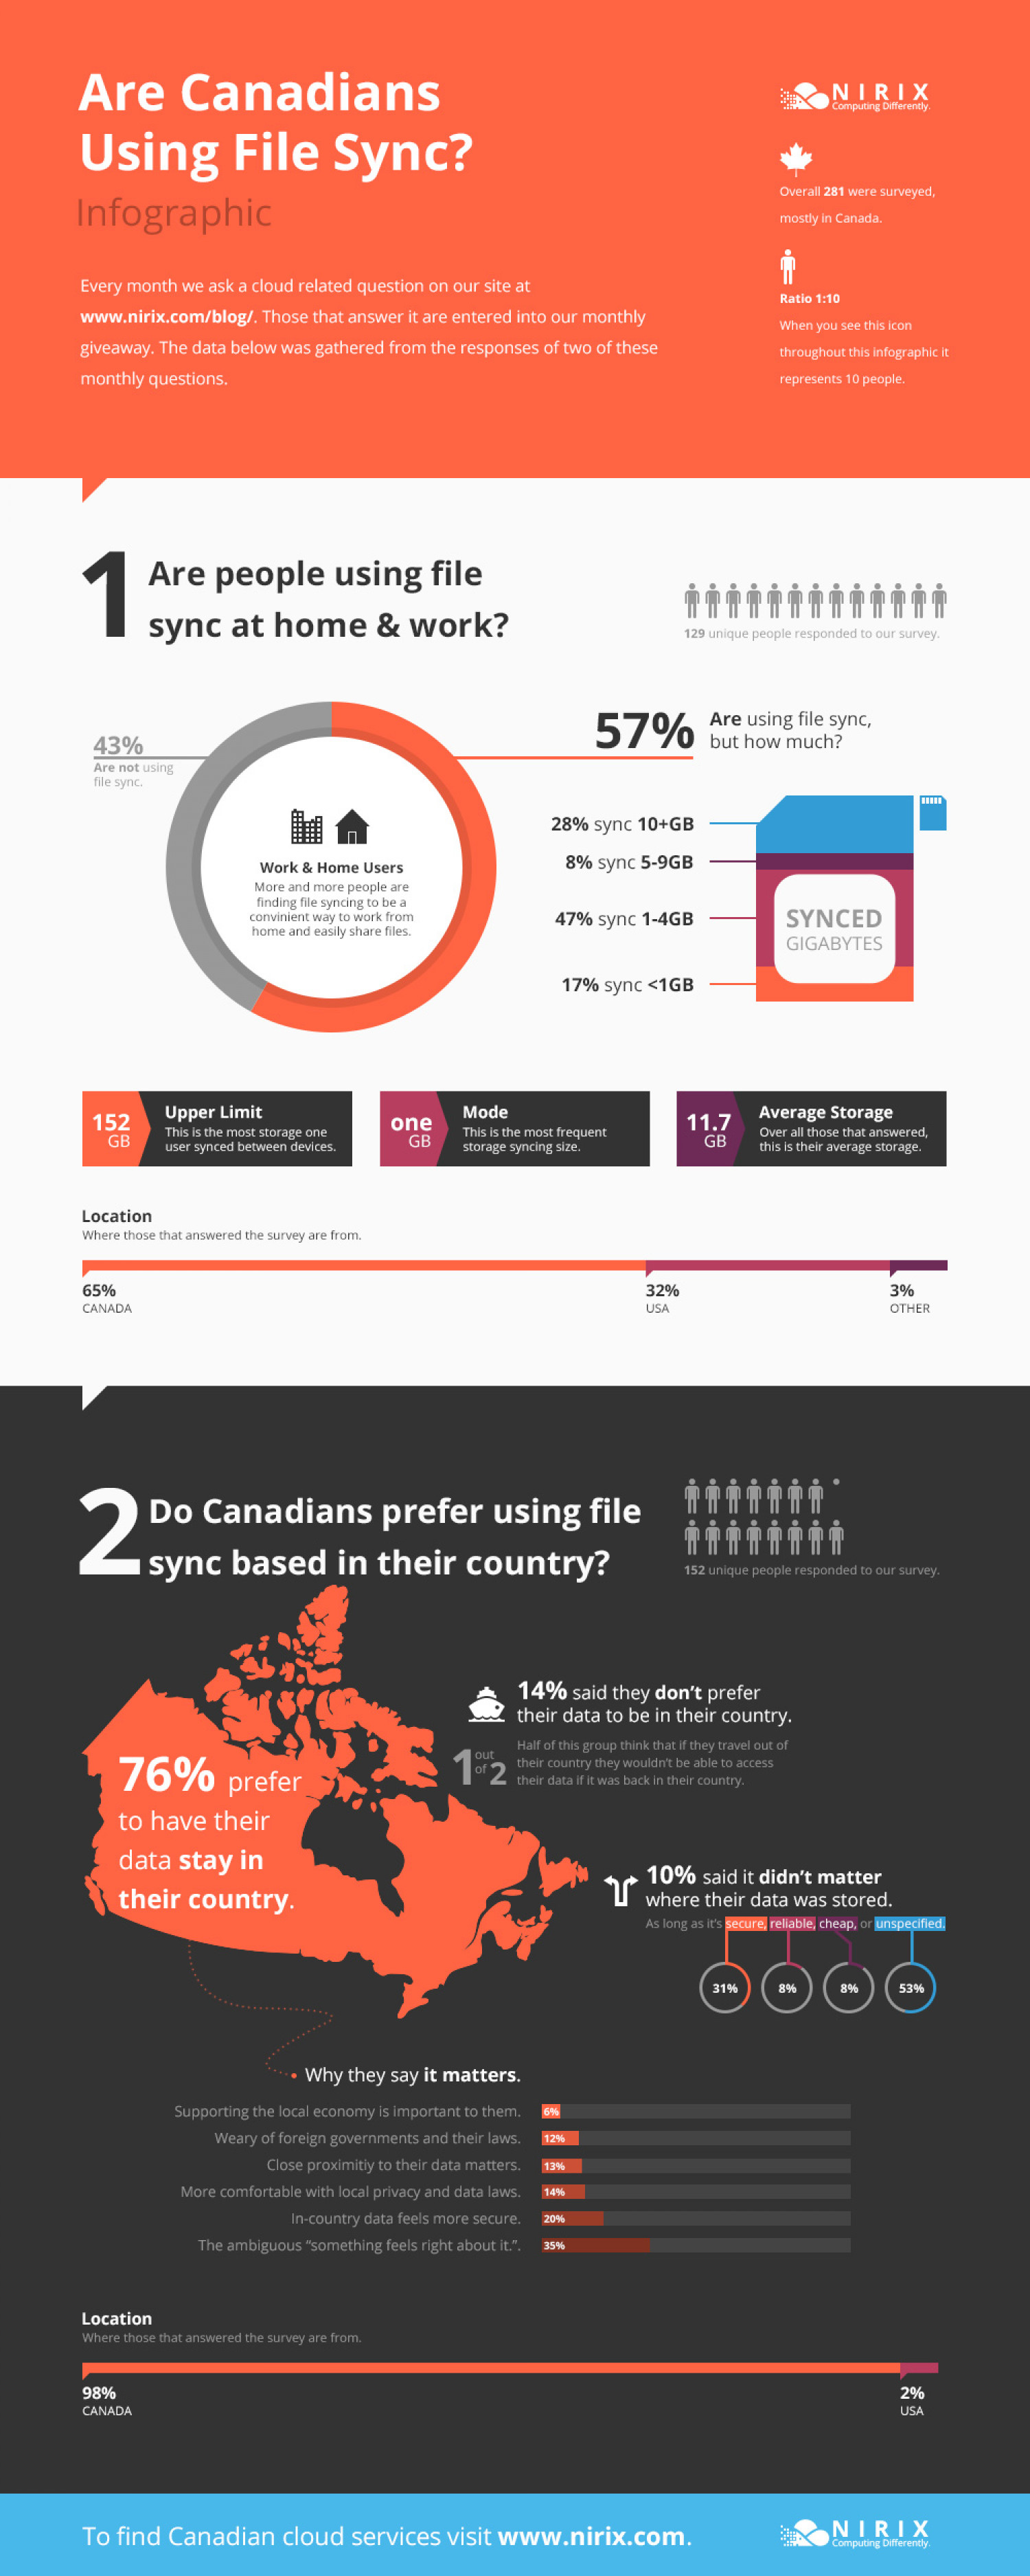 Are Canadian businesses using file sync? Infographic